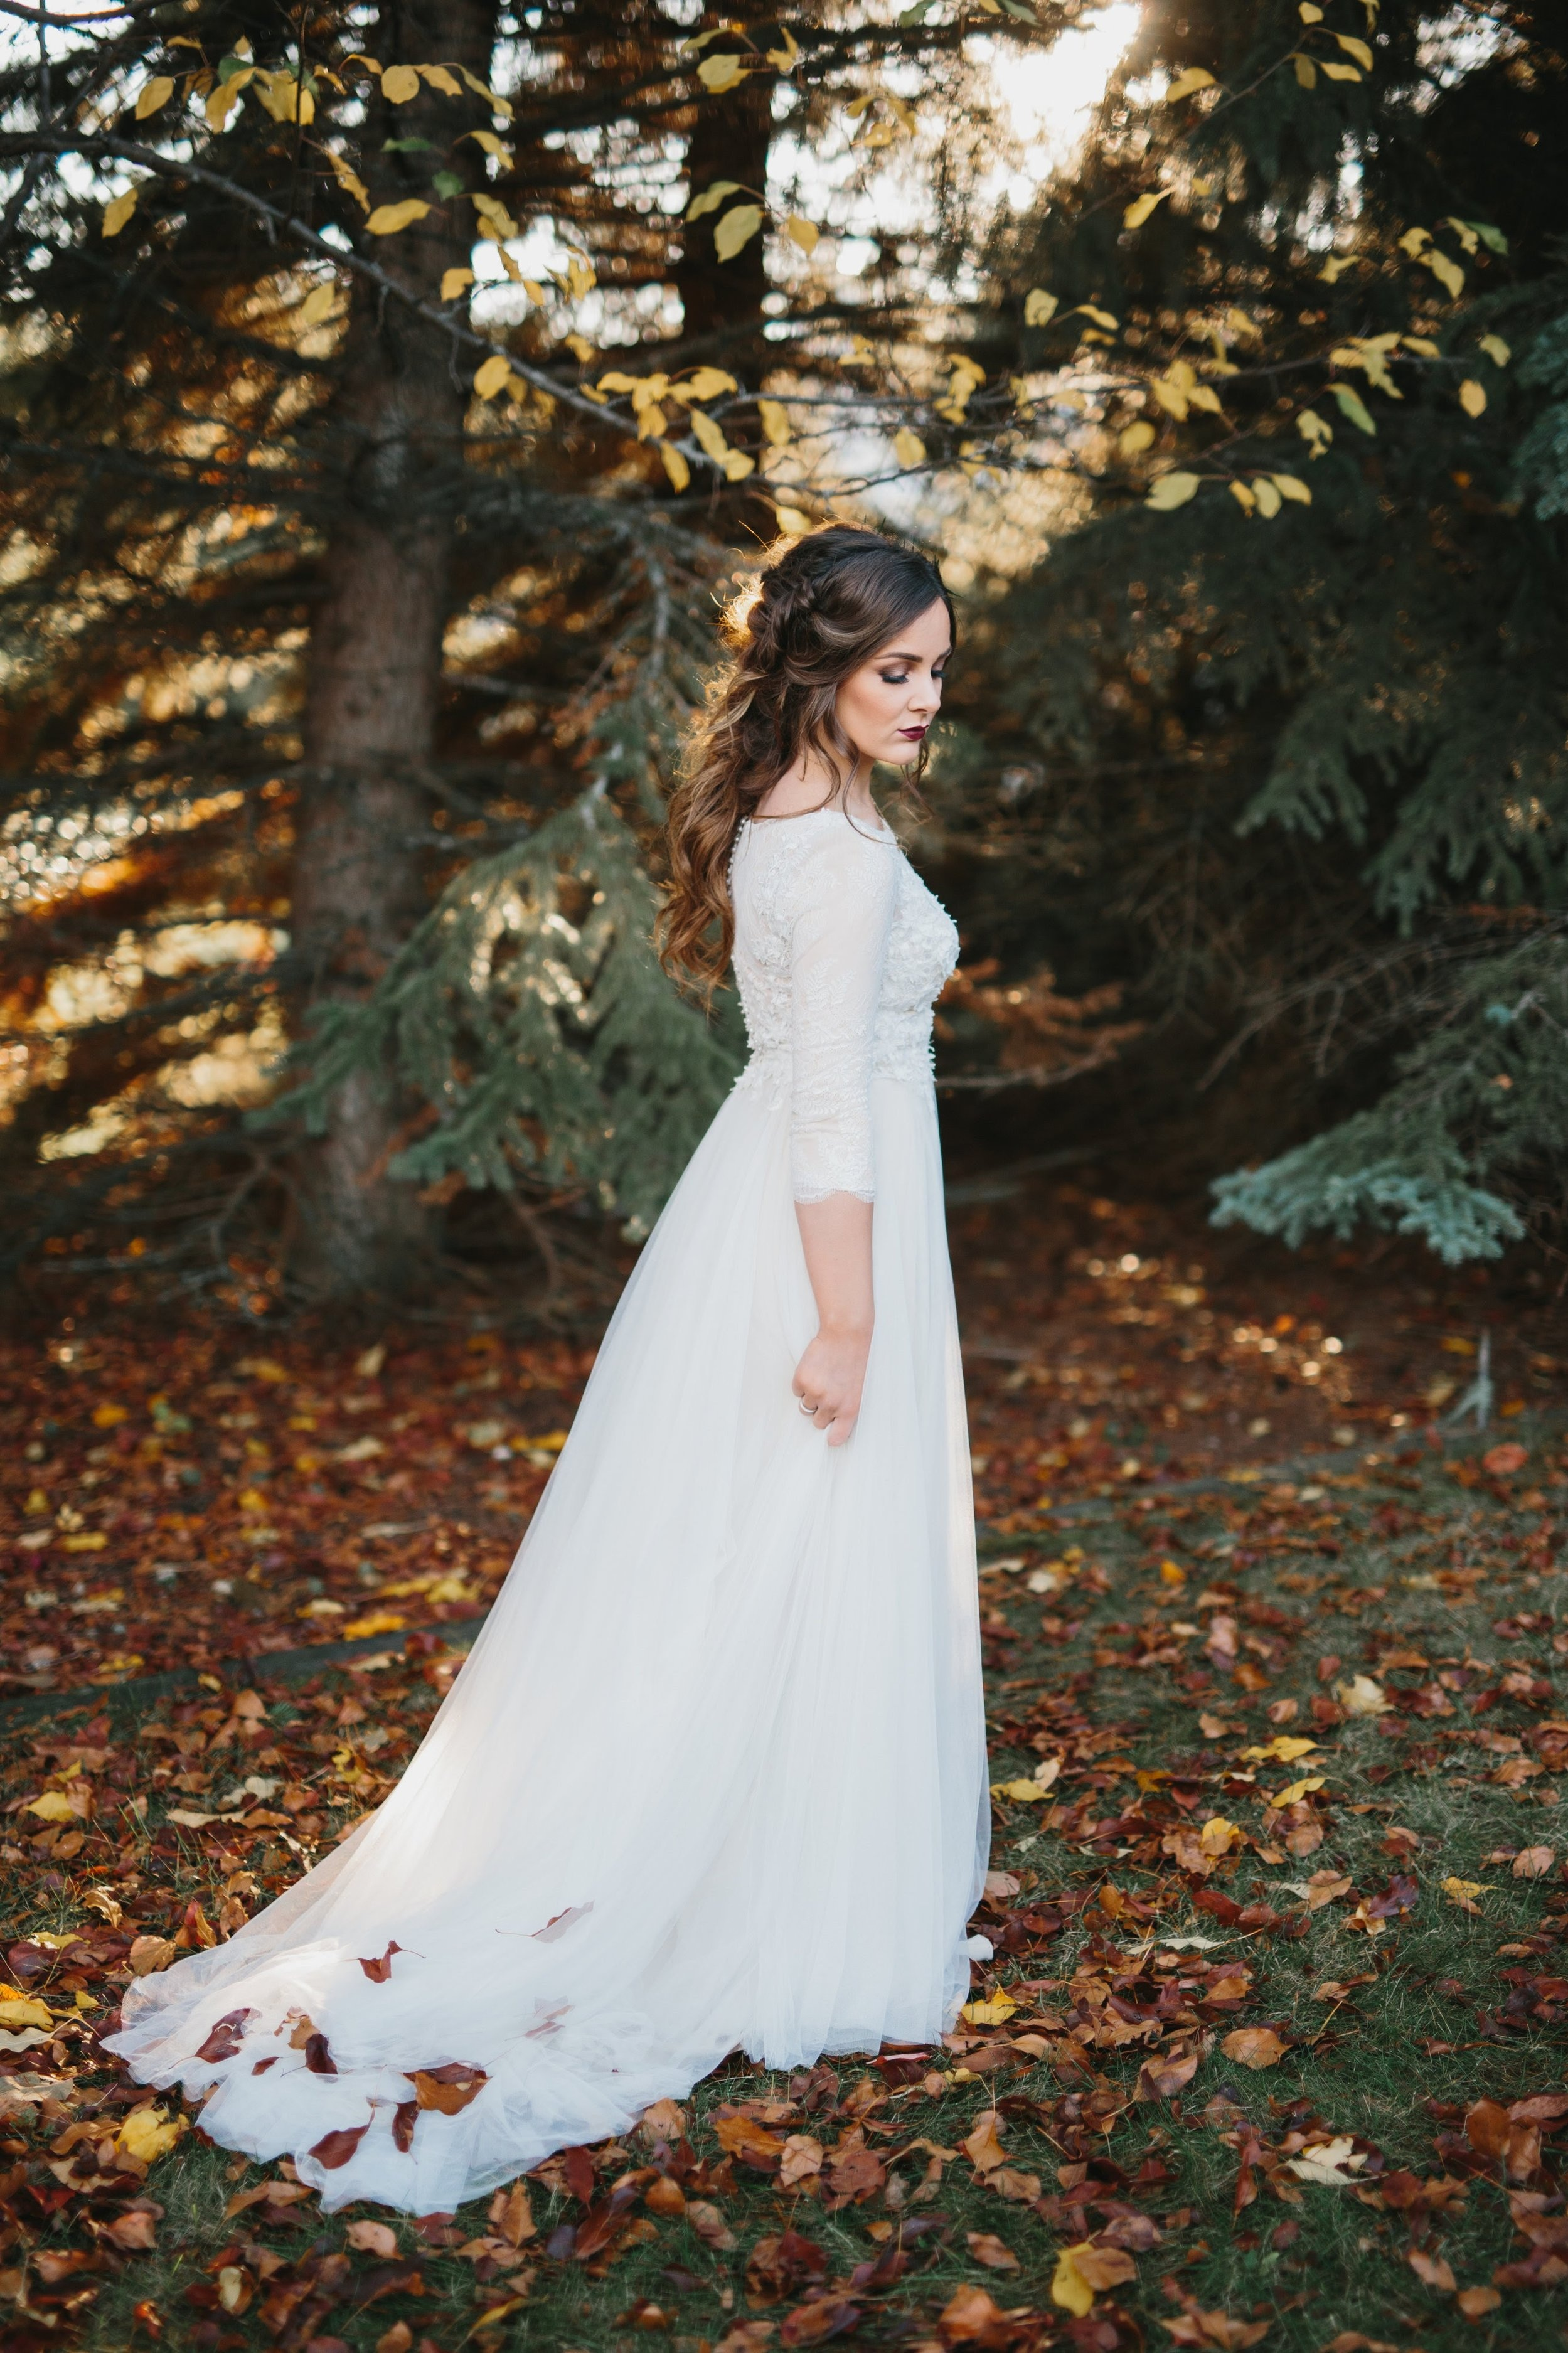 Bronzed Fall Bridal Look  Photo by- Leah Lorna Photography   www.leahlorna.com